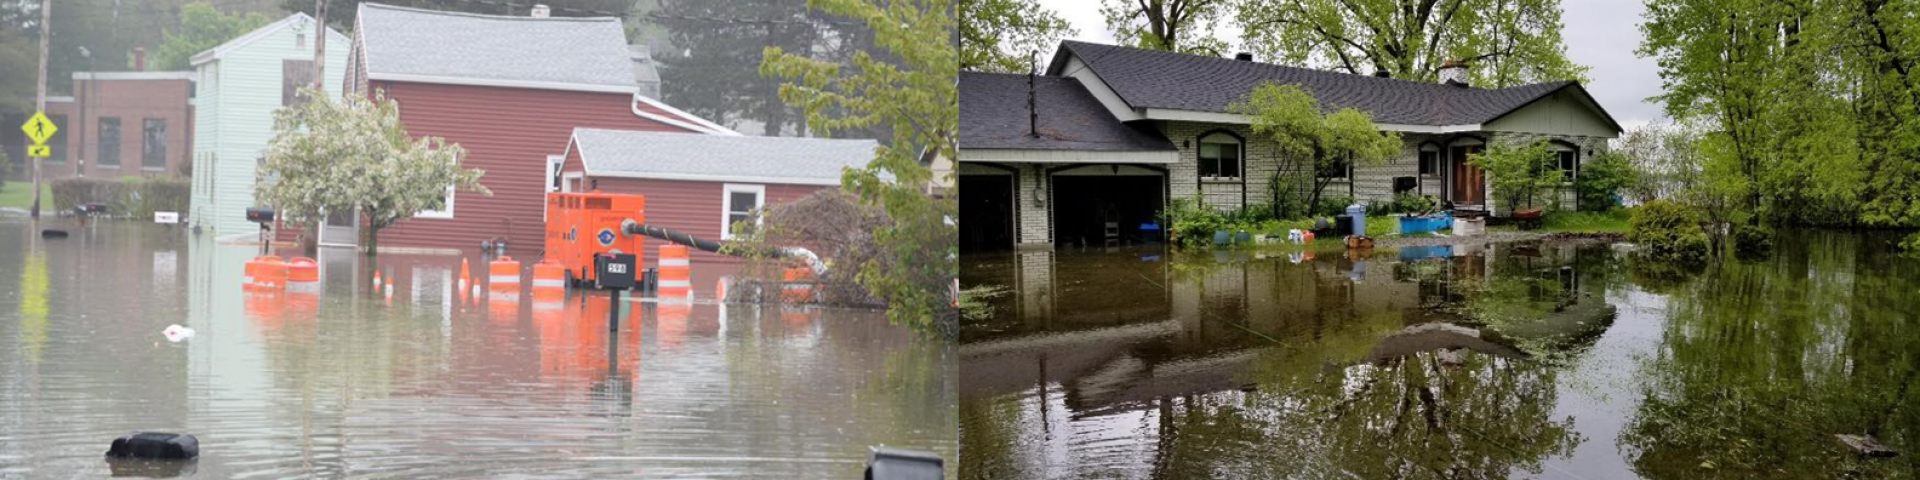 Images of flooding (left to right) upstream – Lake Ontario at Greece, New York, USA, 28 May 2019 (source: ILOSLRB) and downstream – St. Lawrence River at Lake St. Louis, Maple Grove, Quebec, Canada, 2 June 2019 (source: IJC).